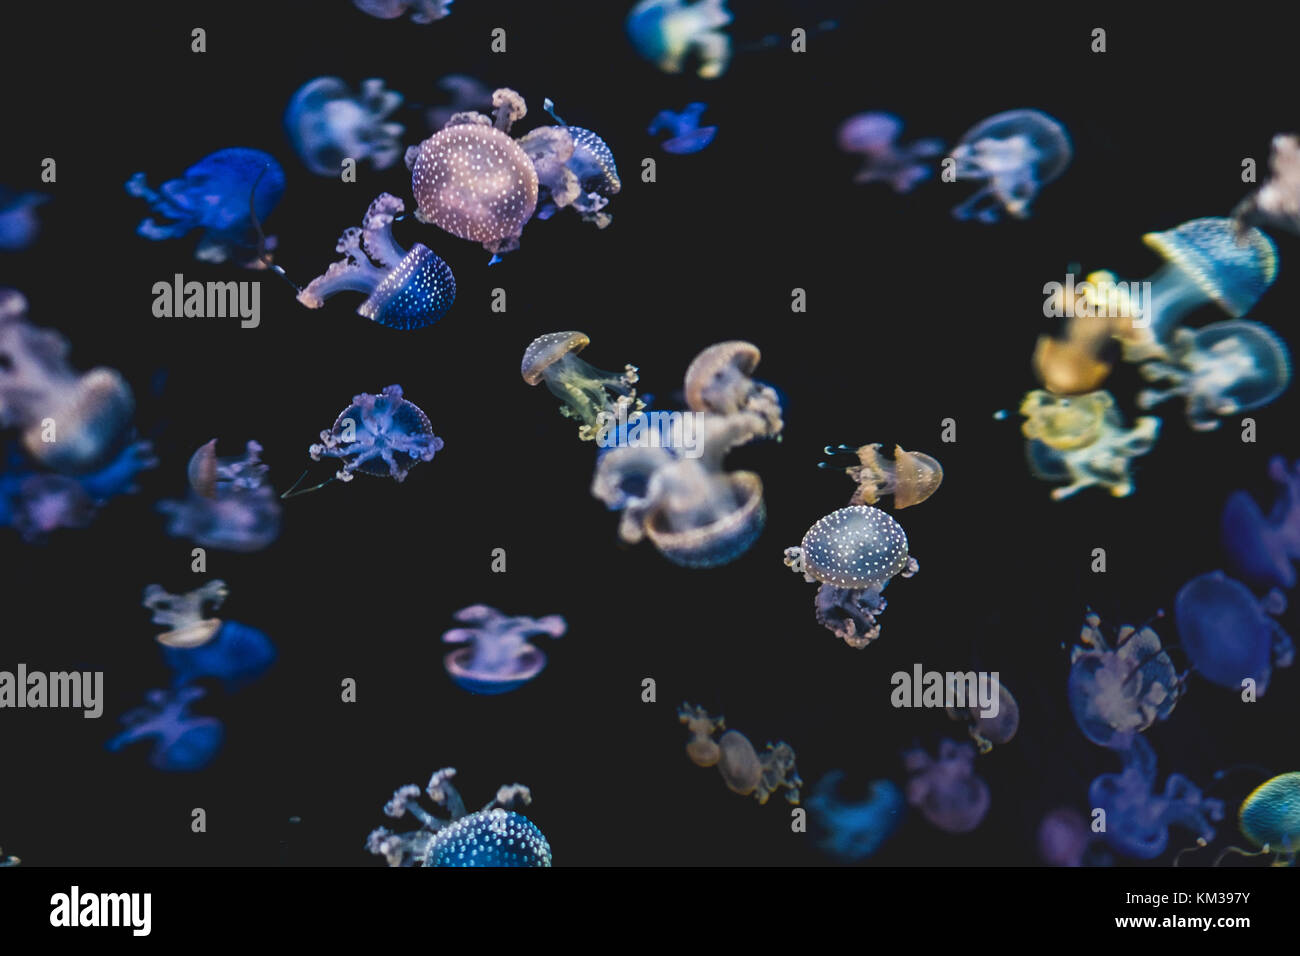 colorful jellyfishes on black background - white spotted jellyfish - Stock Image